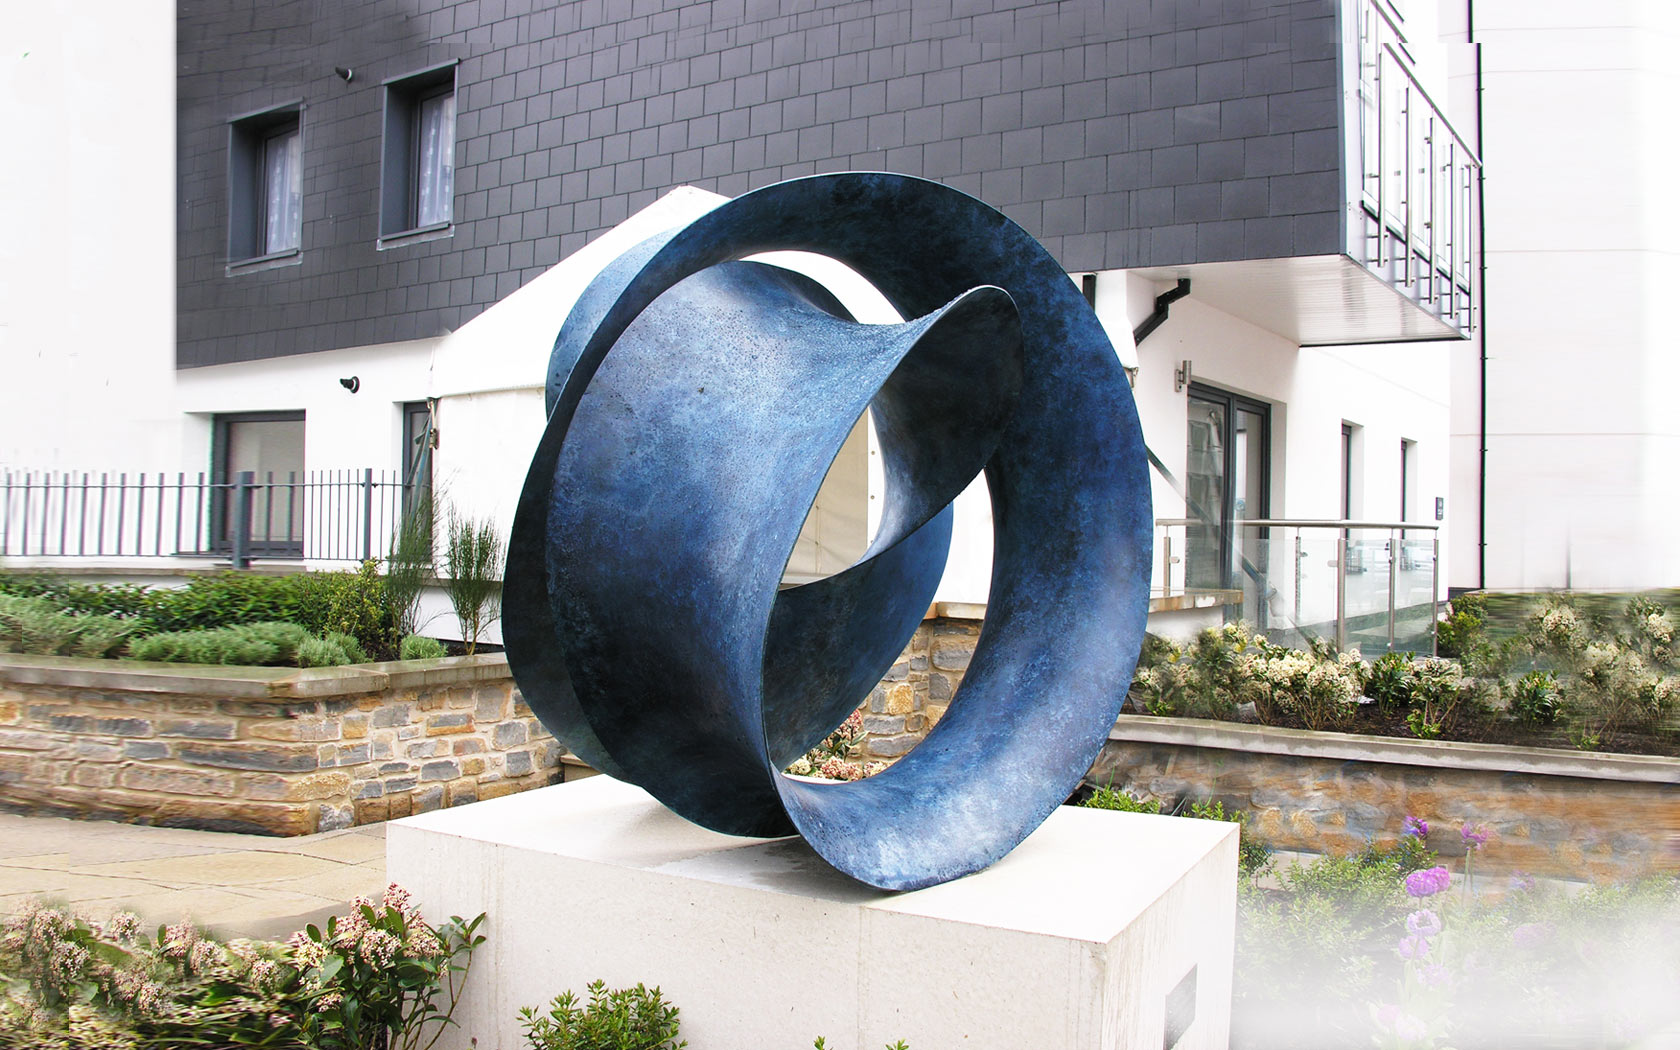 Public commission Torquay, UK. Bronze with blue patina, 130x130x90 cm.